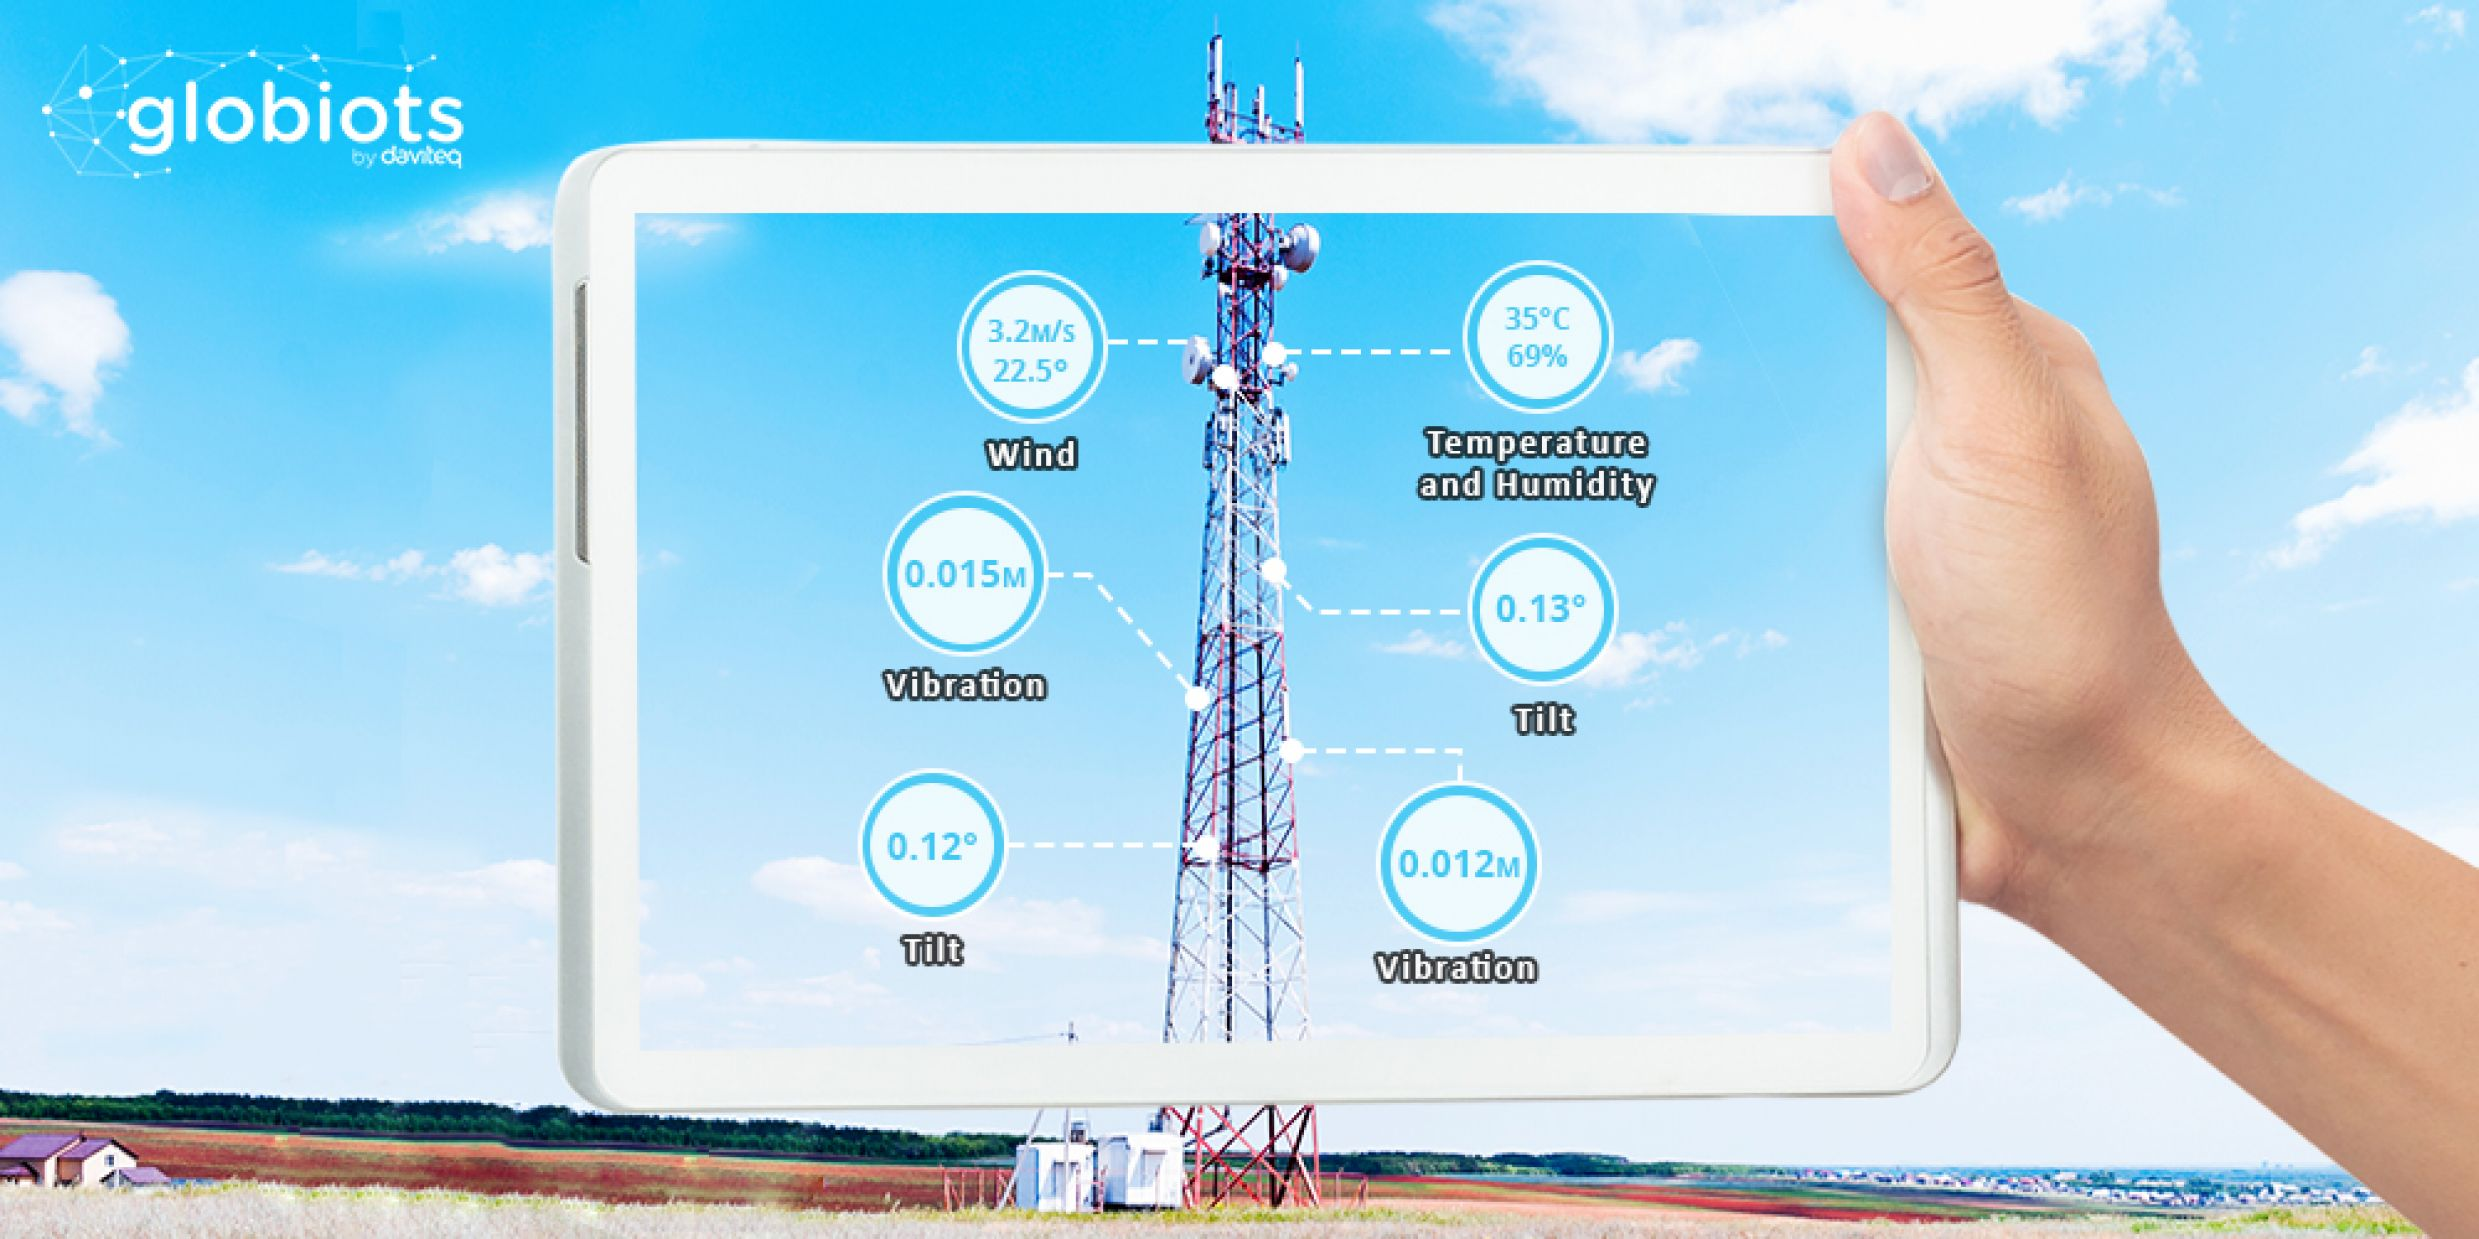 Tower Health - A vibration monitoring solution for telecom tower